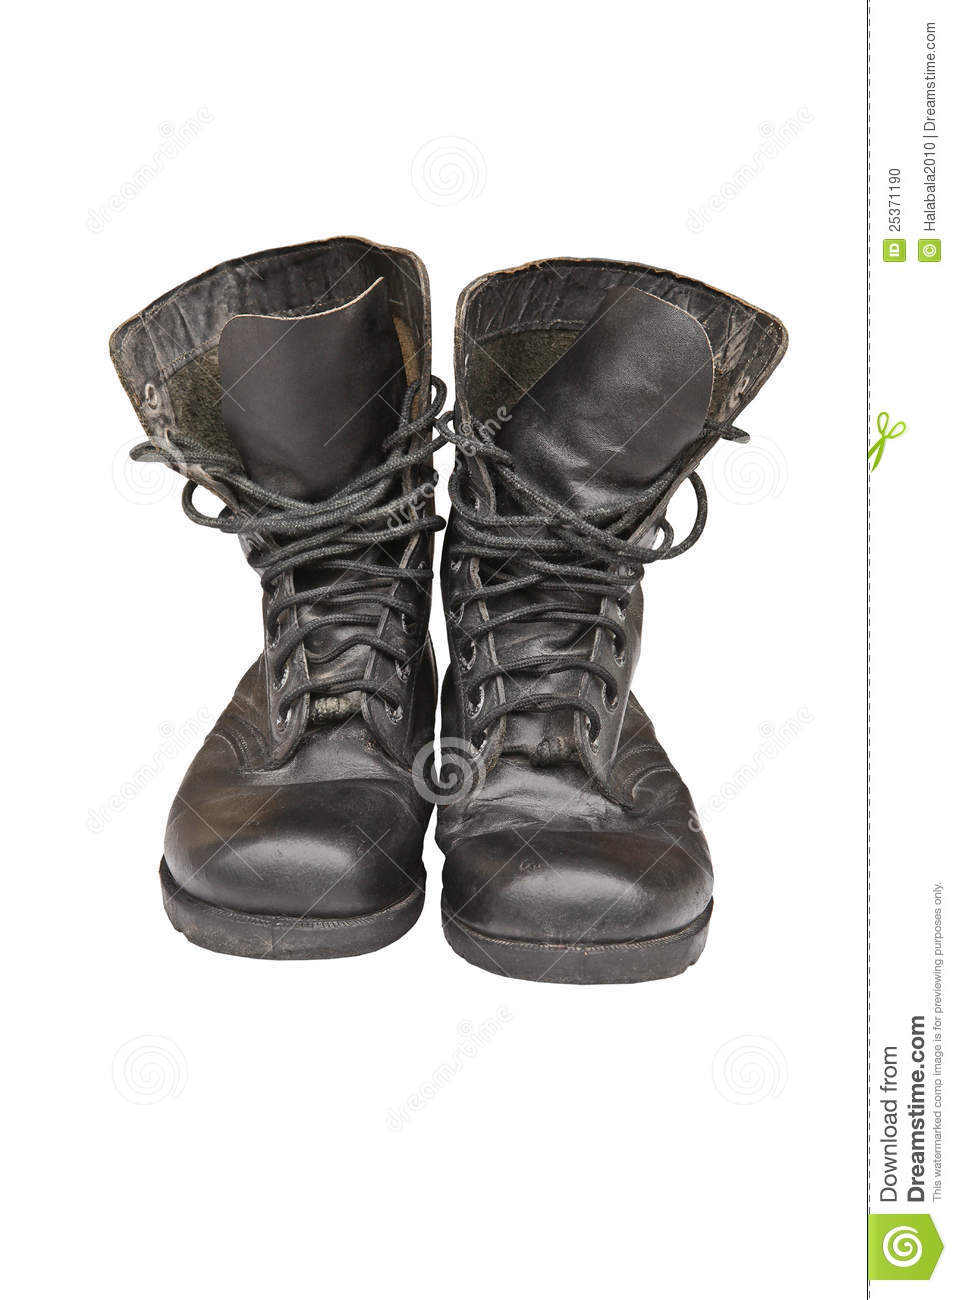 Old Leather Military Boots Stock Photo Image Of Isolated